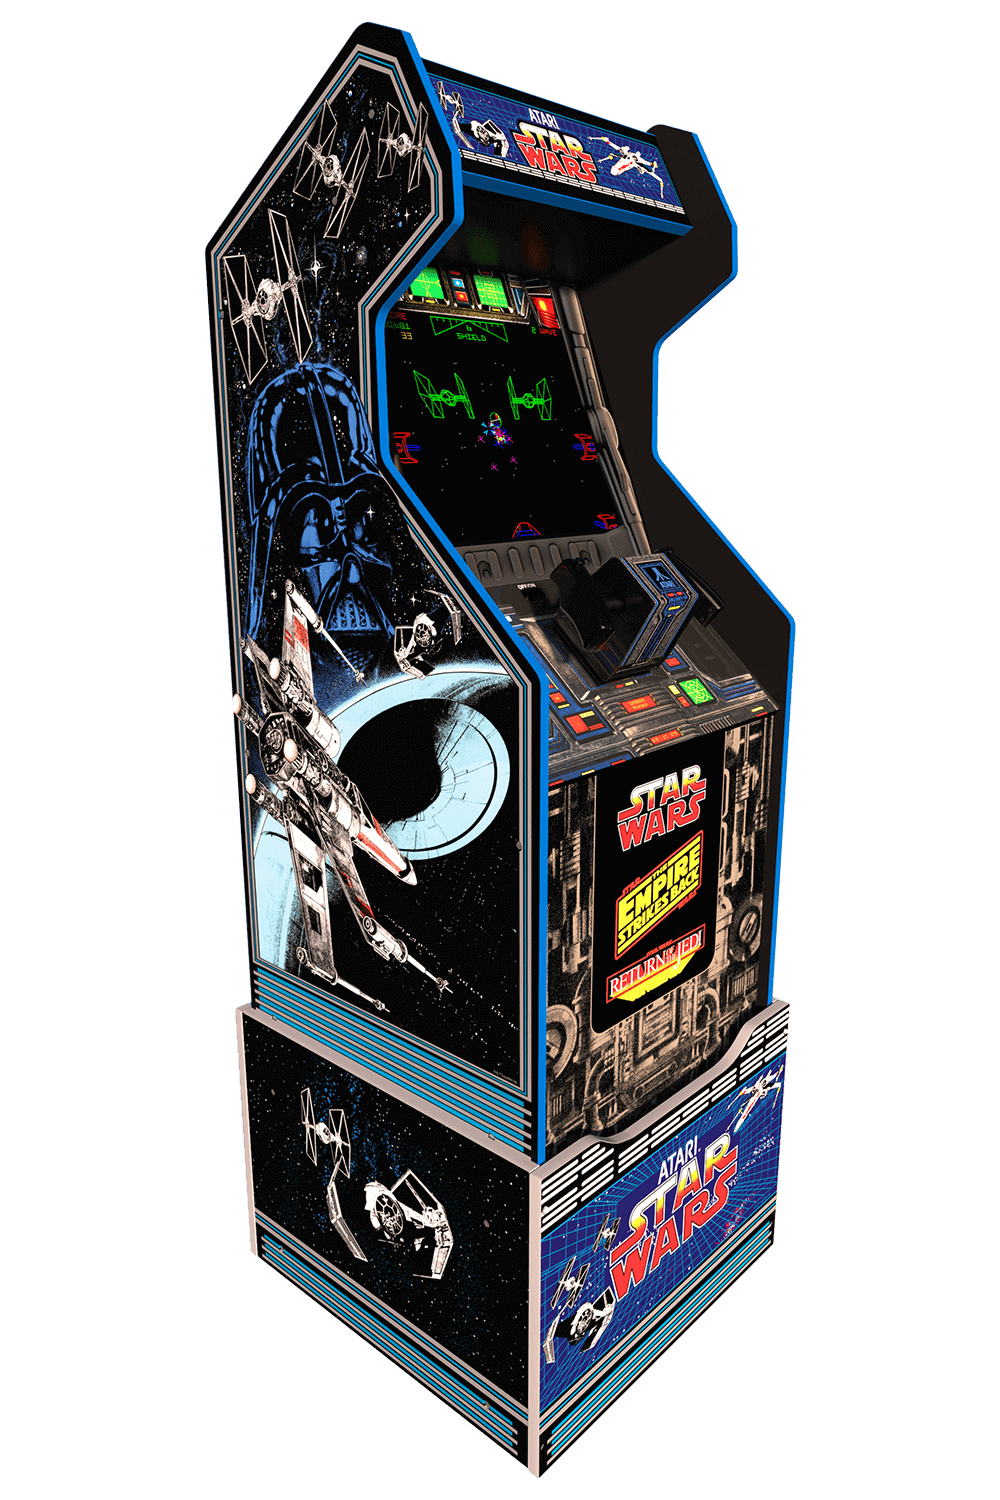 Astonishing Arcade1Up Officially Licensed Arcade Cabinets Download Free Architecture Designs Remcamadebymaigaardcom